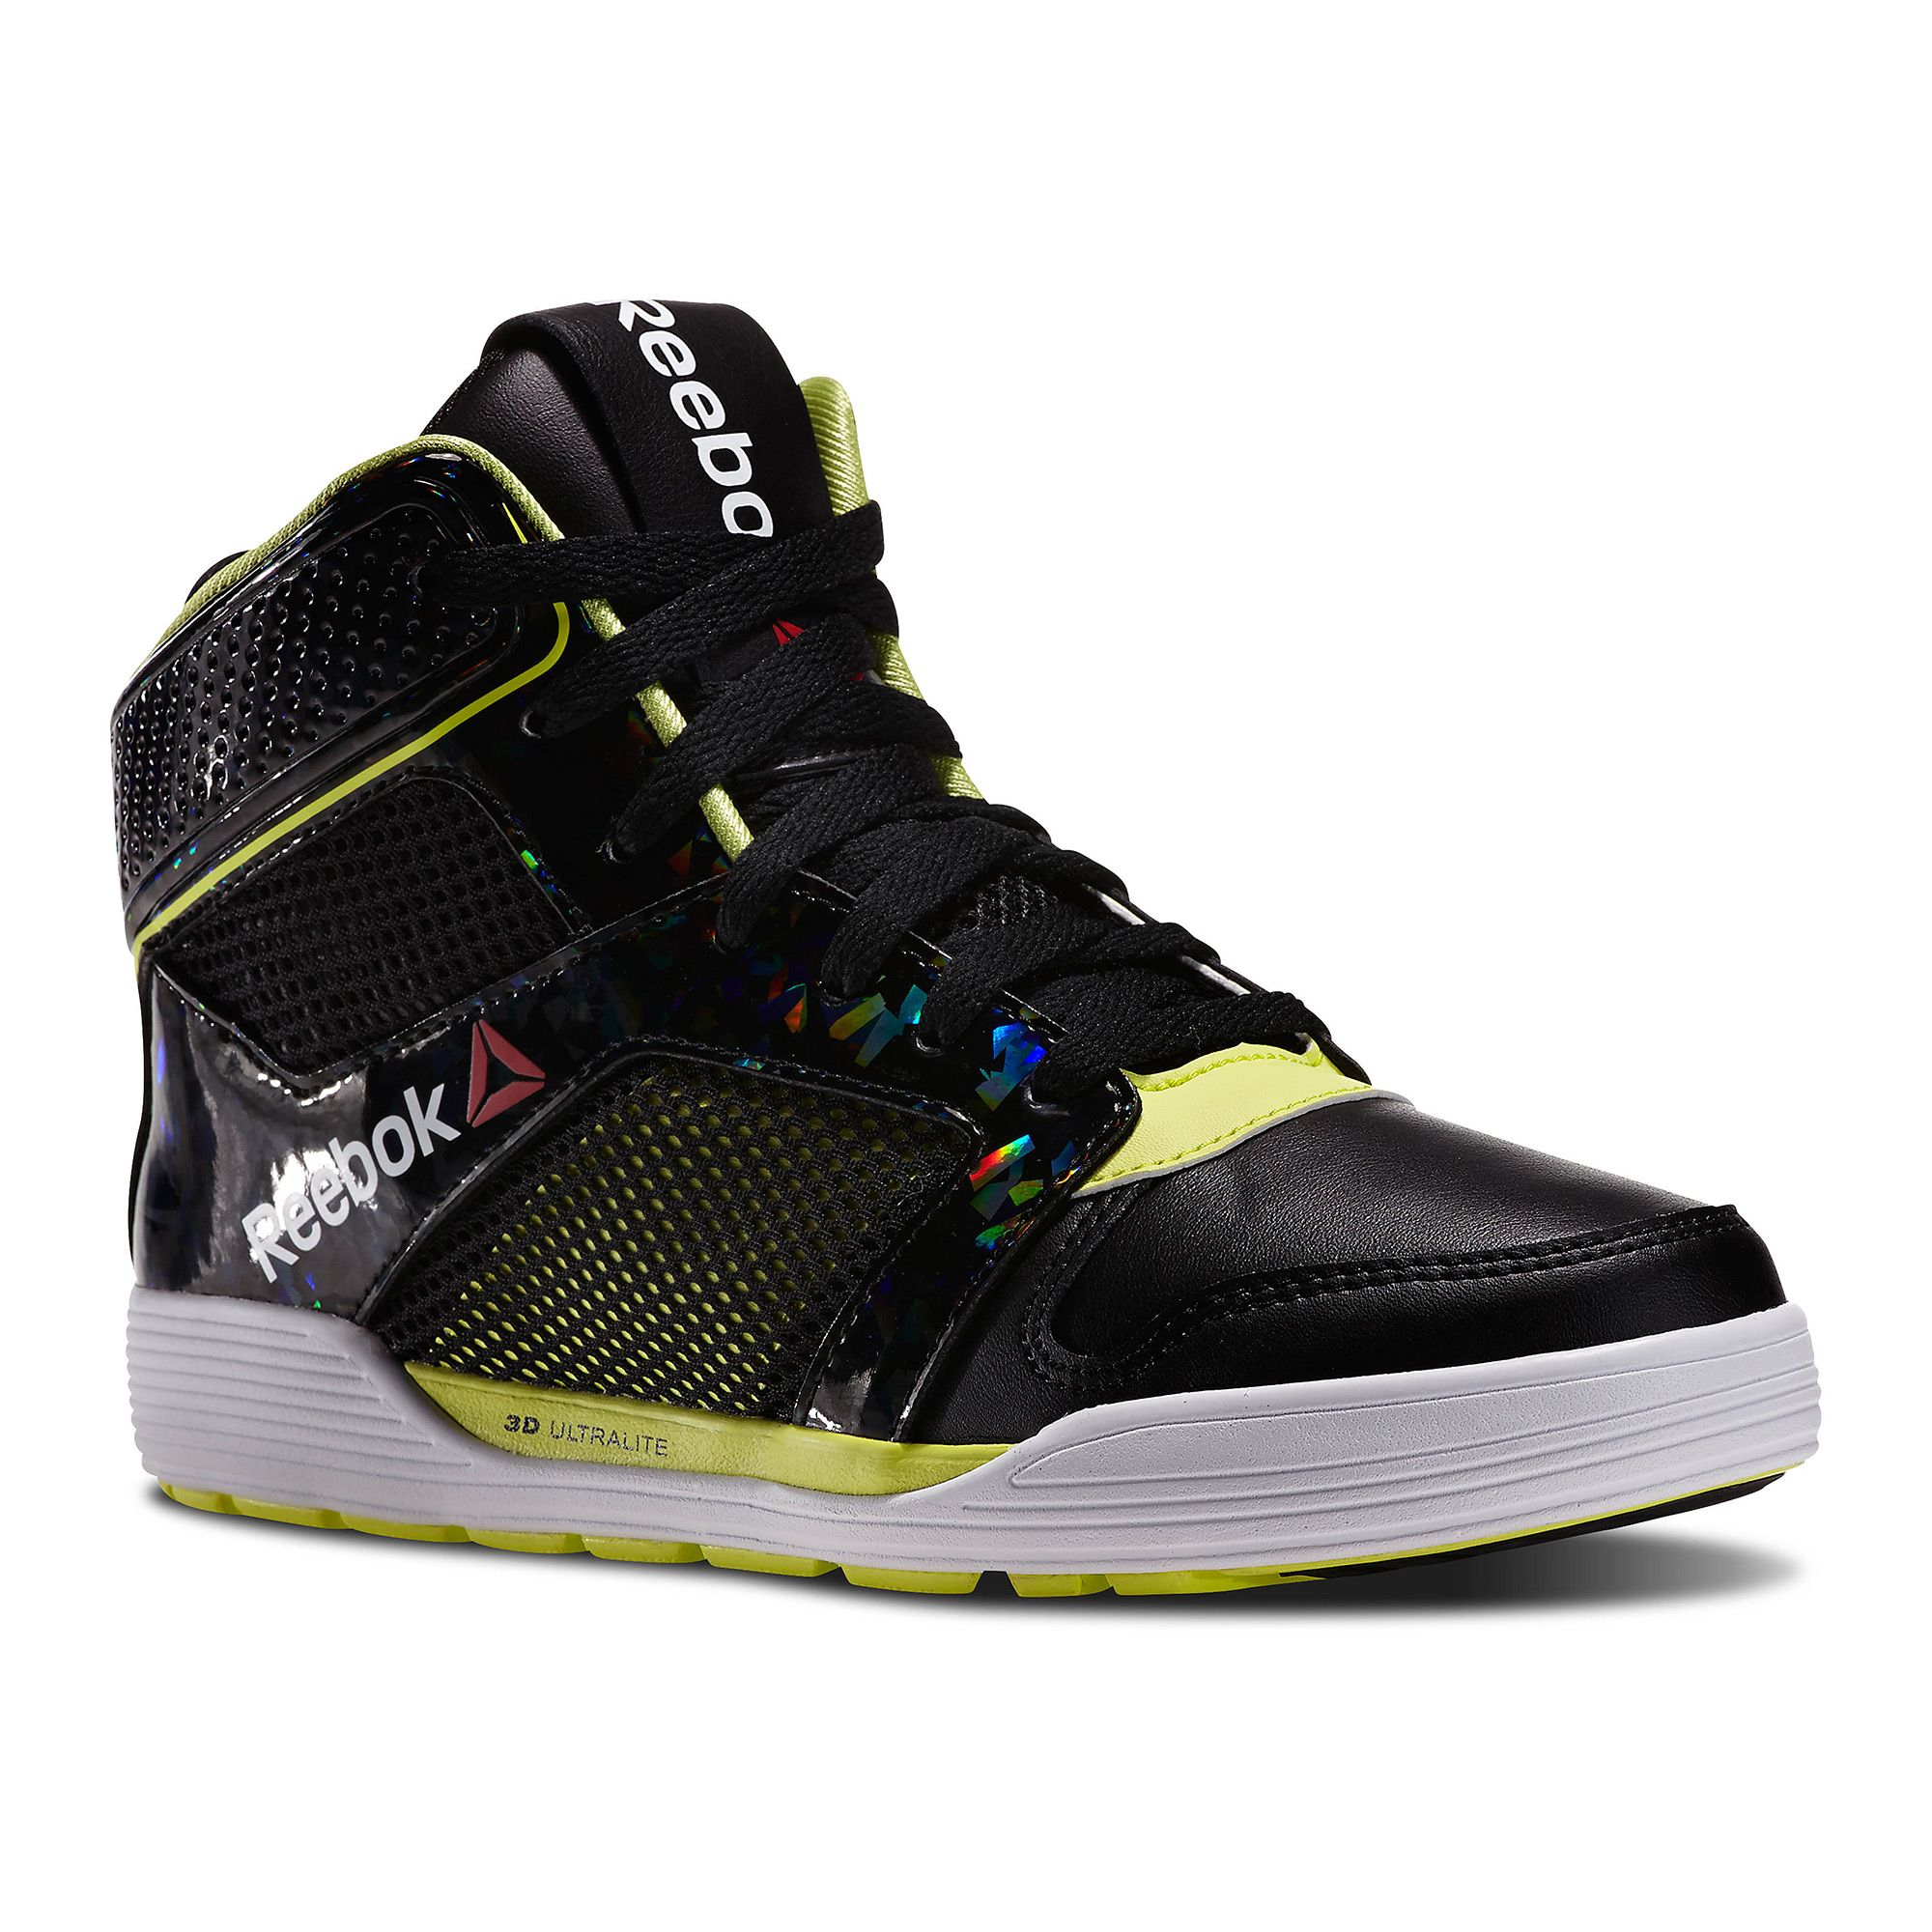 Reebok-Sports-shoes-and-running-shoes-for-men (16)